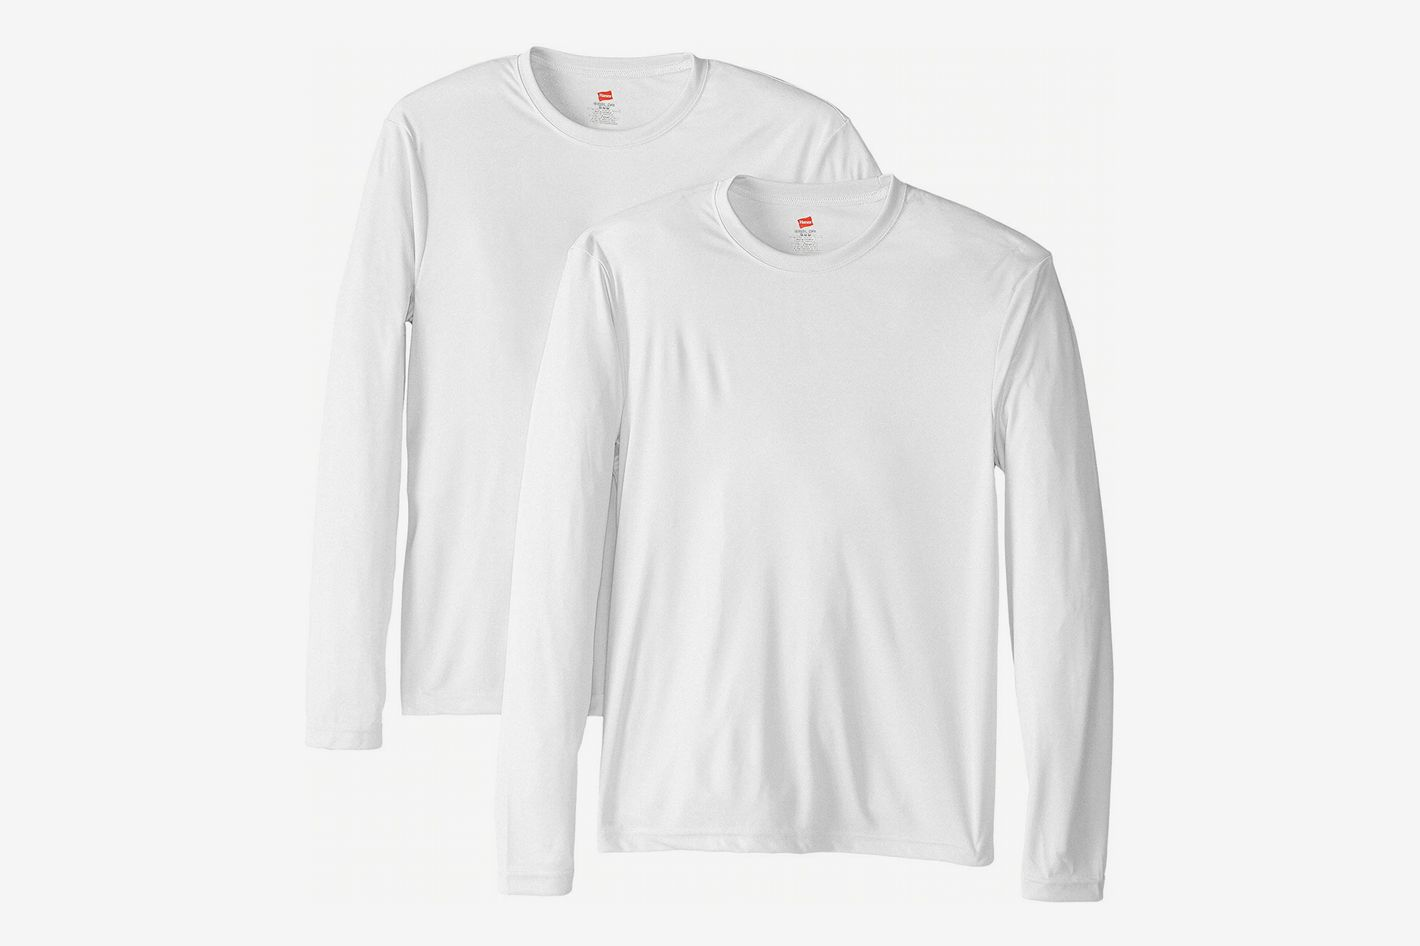 4b185ea3abe2f Hanes Men s Long Sleeve Cool Dri T-Shirt UPF 50+